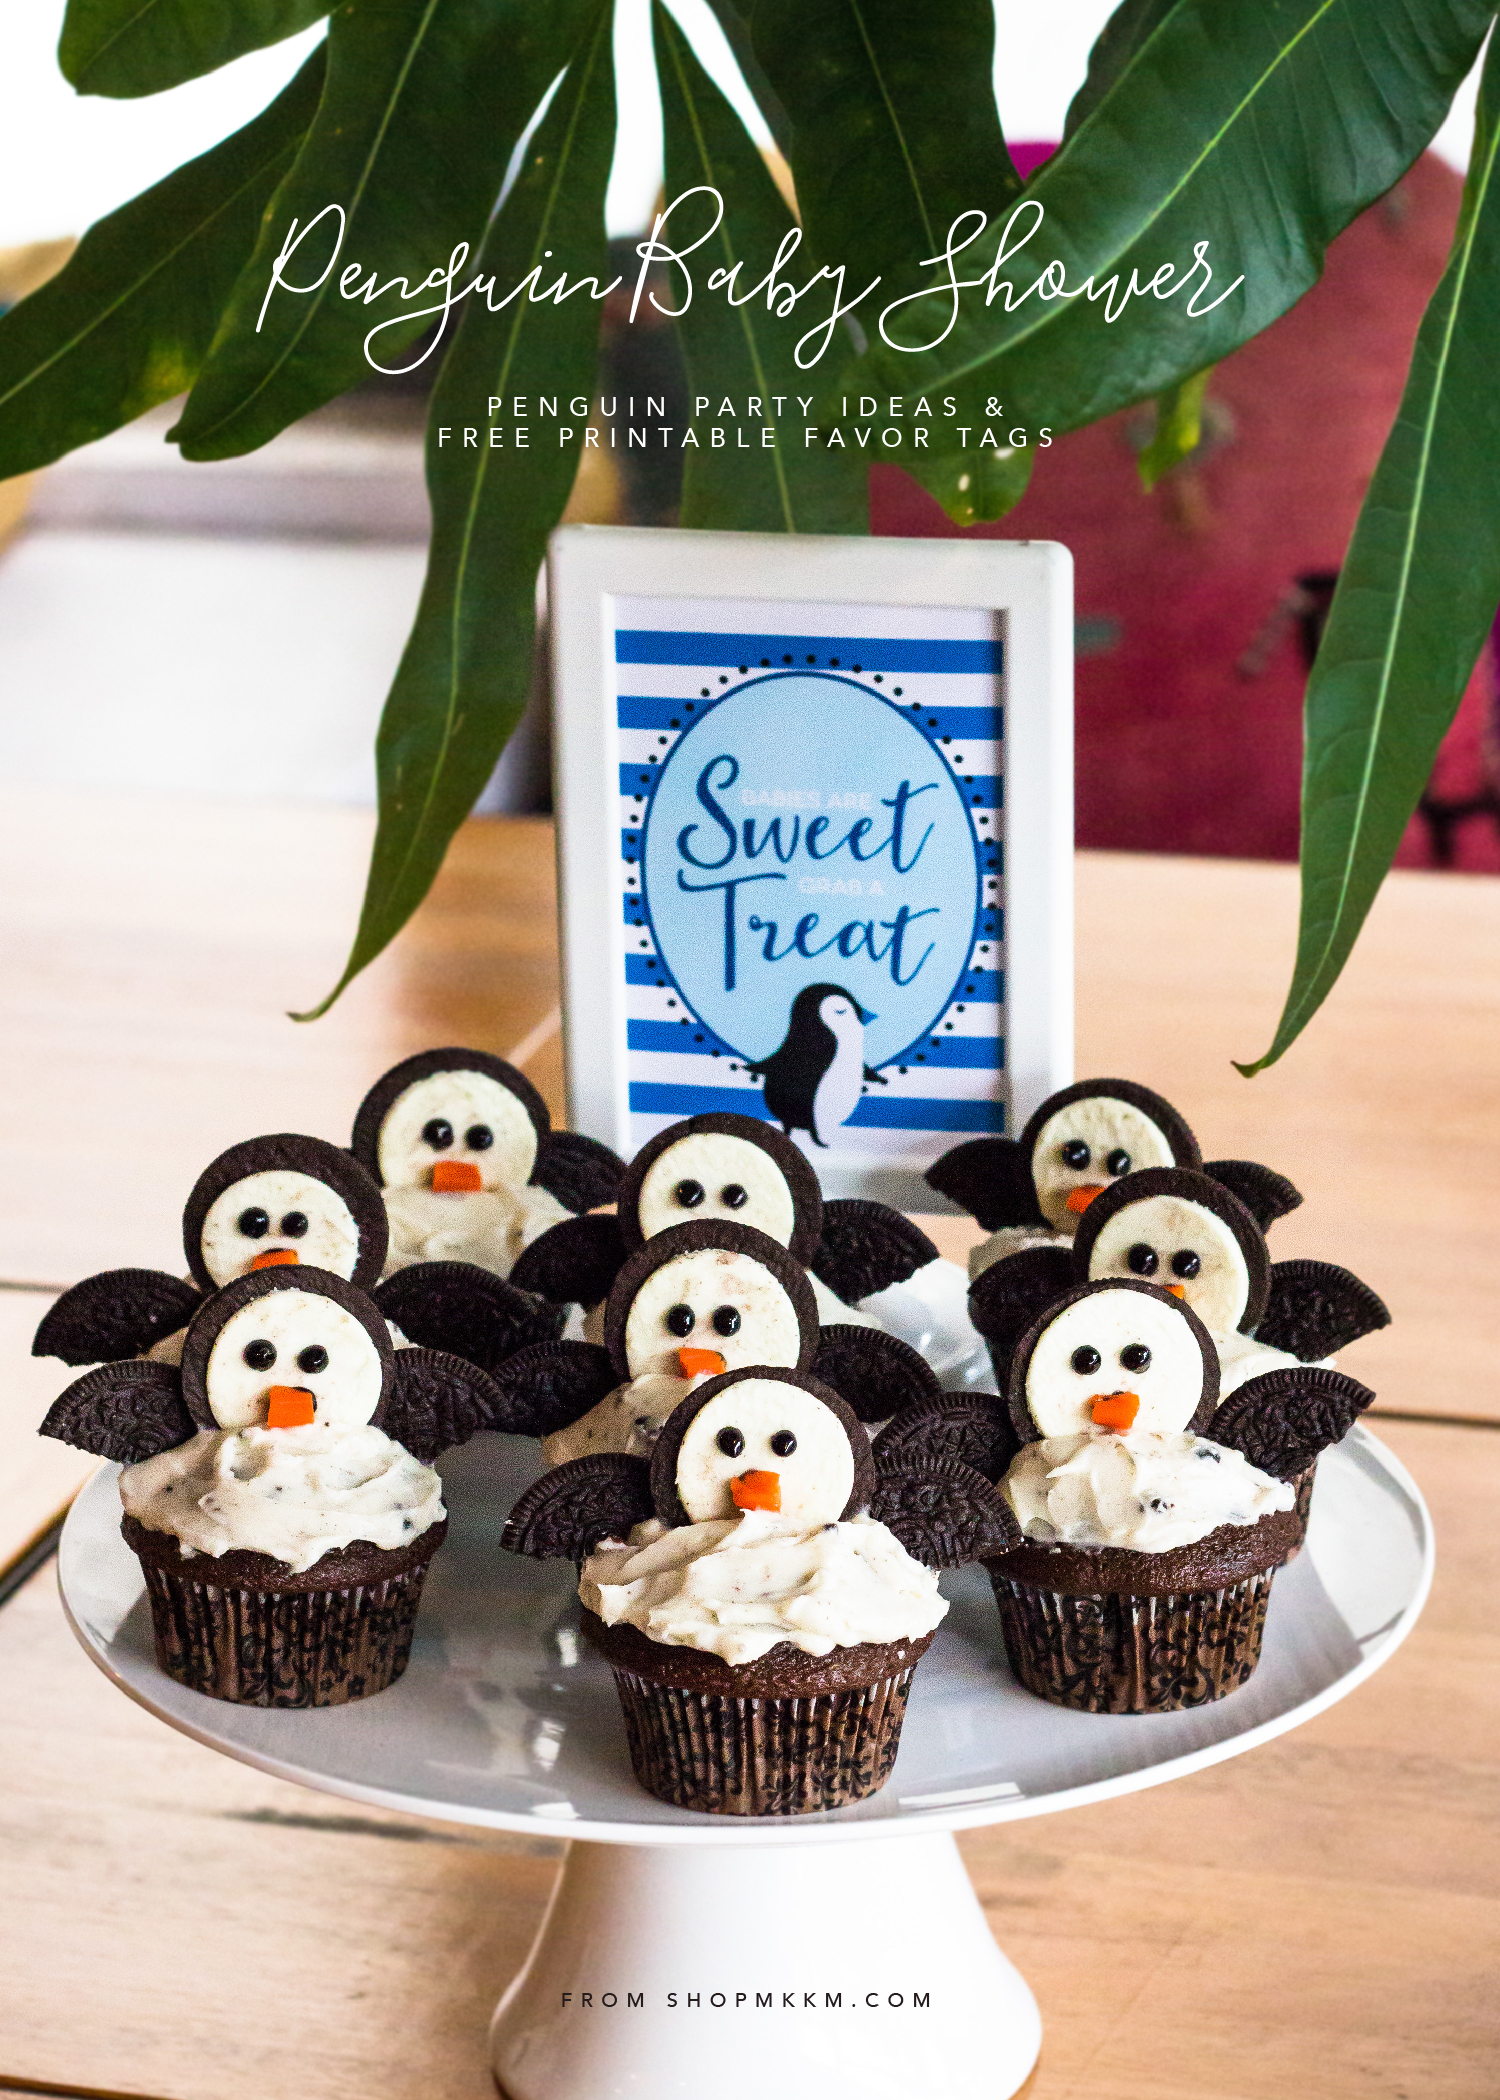 Penguin Baby Shower - Mini Party Recap. Tips on throwing a baby sprinkle for your mom to be. Grab some free printable favor tags and scroll through for some Penguin party ideas.